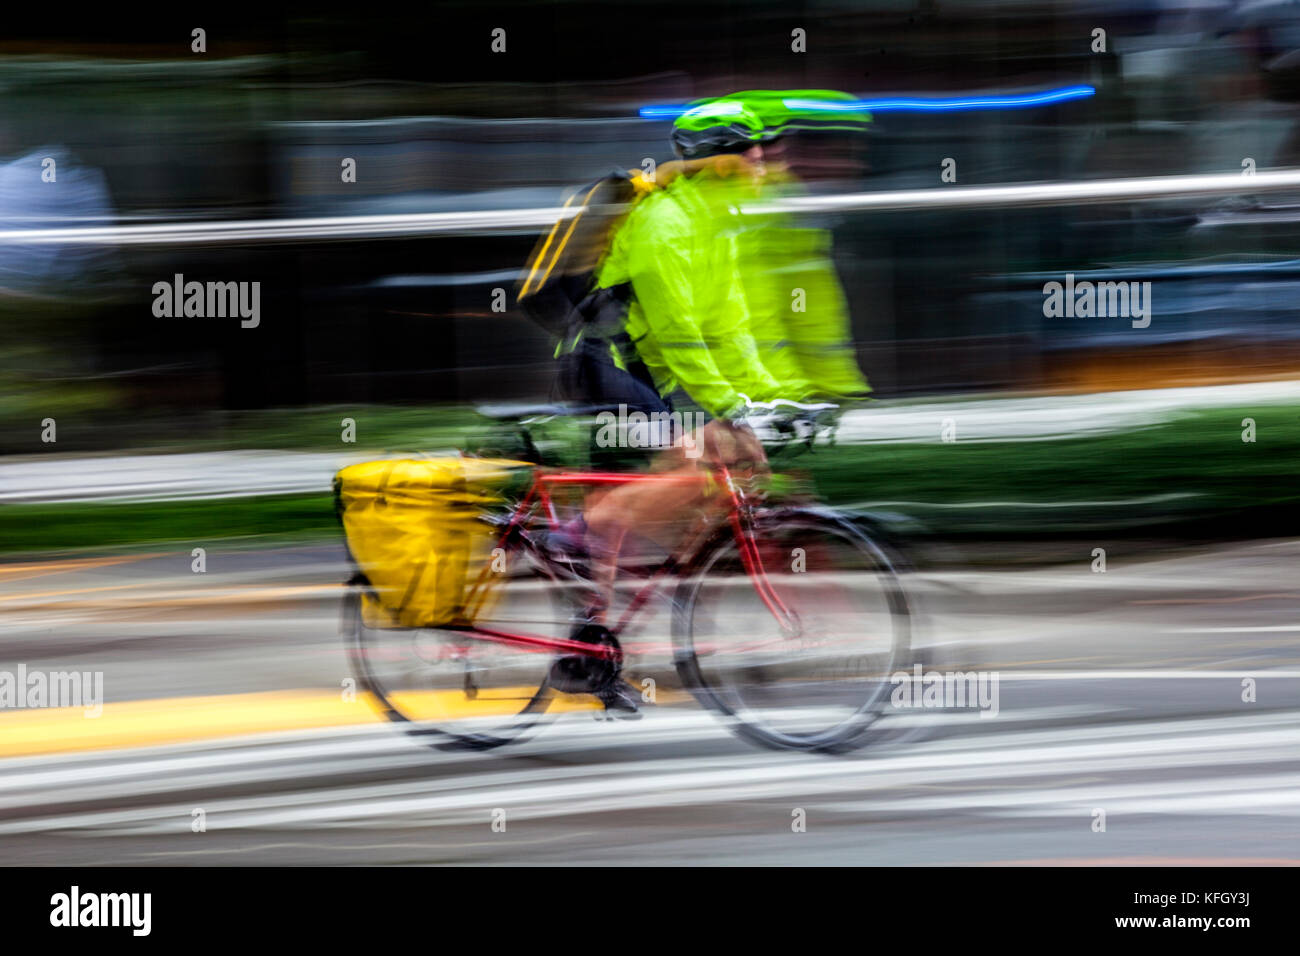 WA14185-00...WASHINGTON - Bicycle ridder on a wet day in down town Seattle. (No MR) - Stock Image